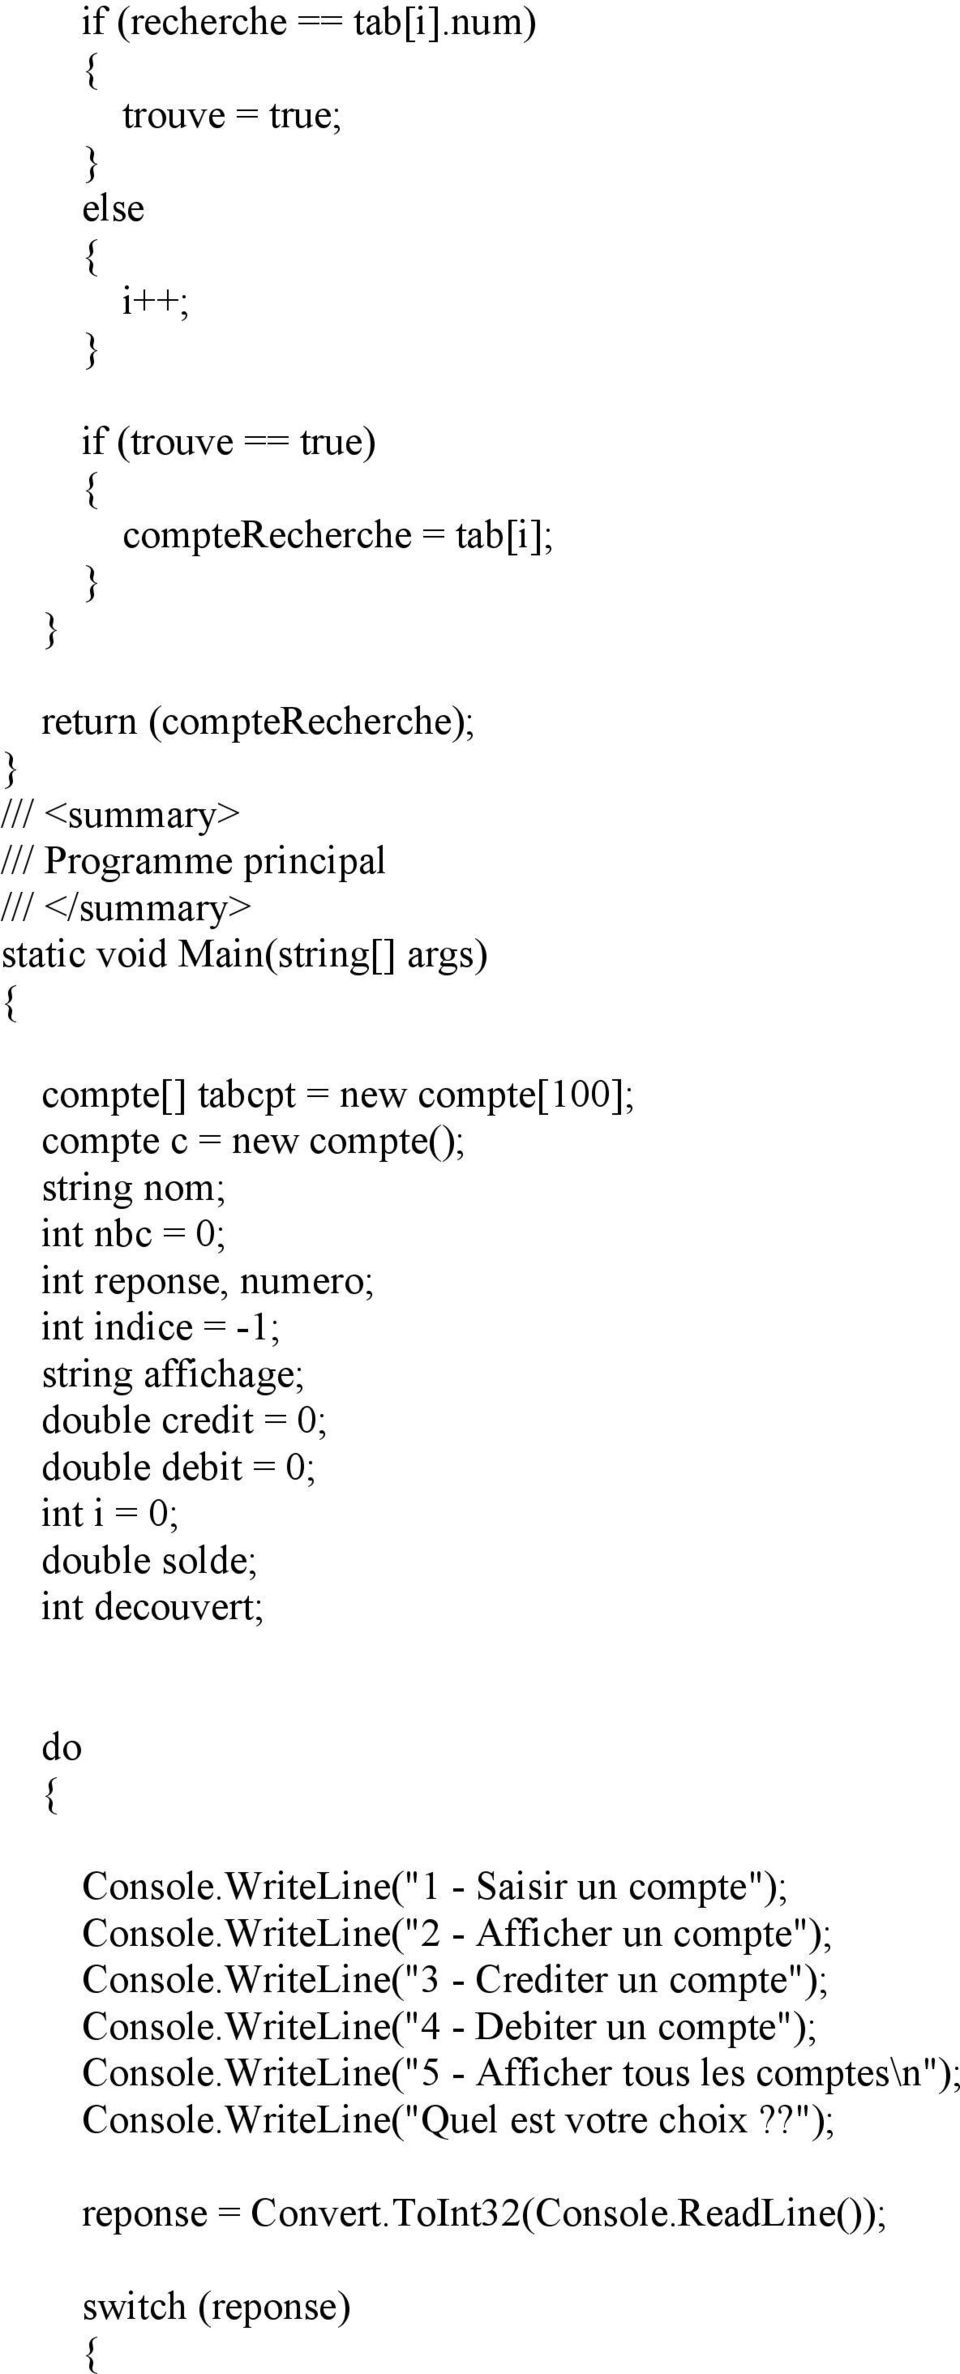 compte[100]; compte c = new compte(); string nom; int nbc = 0; int reponse, numero; int indice = -1; string affichage; double credit = 0; double debit = 0; double solde; int